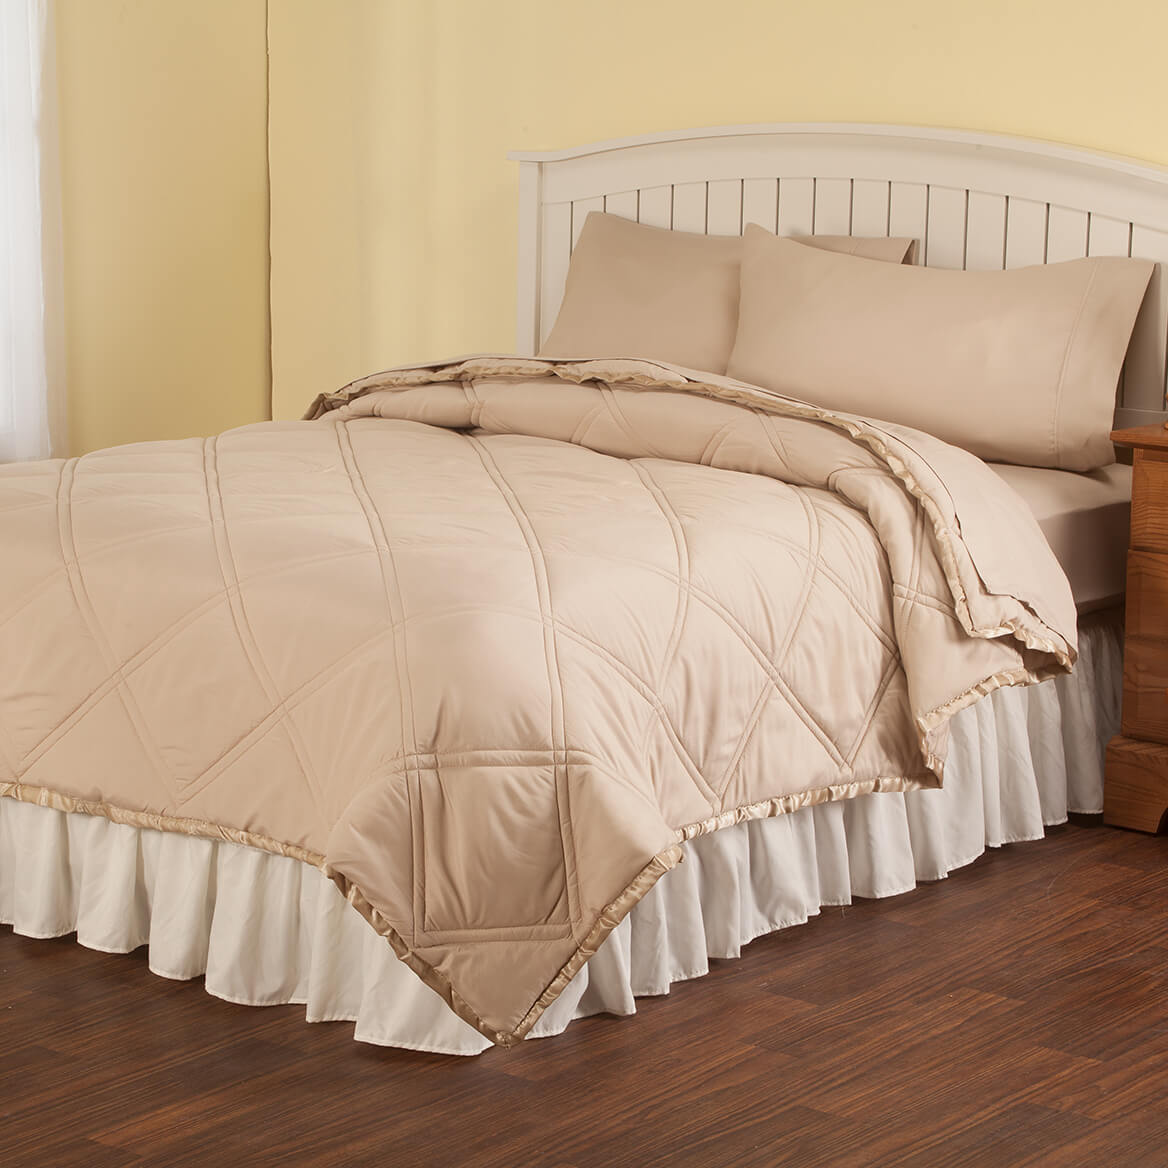 Microfiber Comforter and Sheet Set-364581